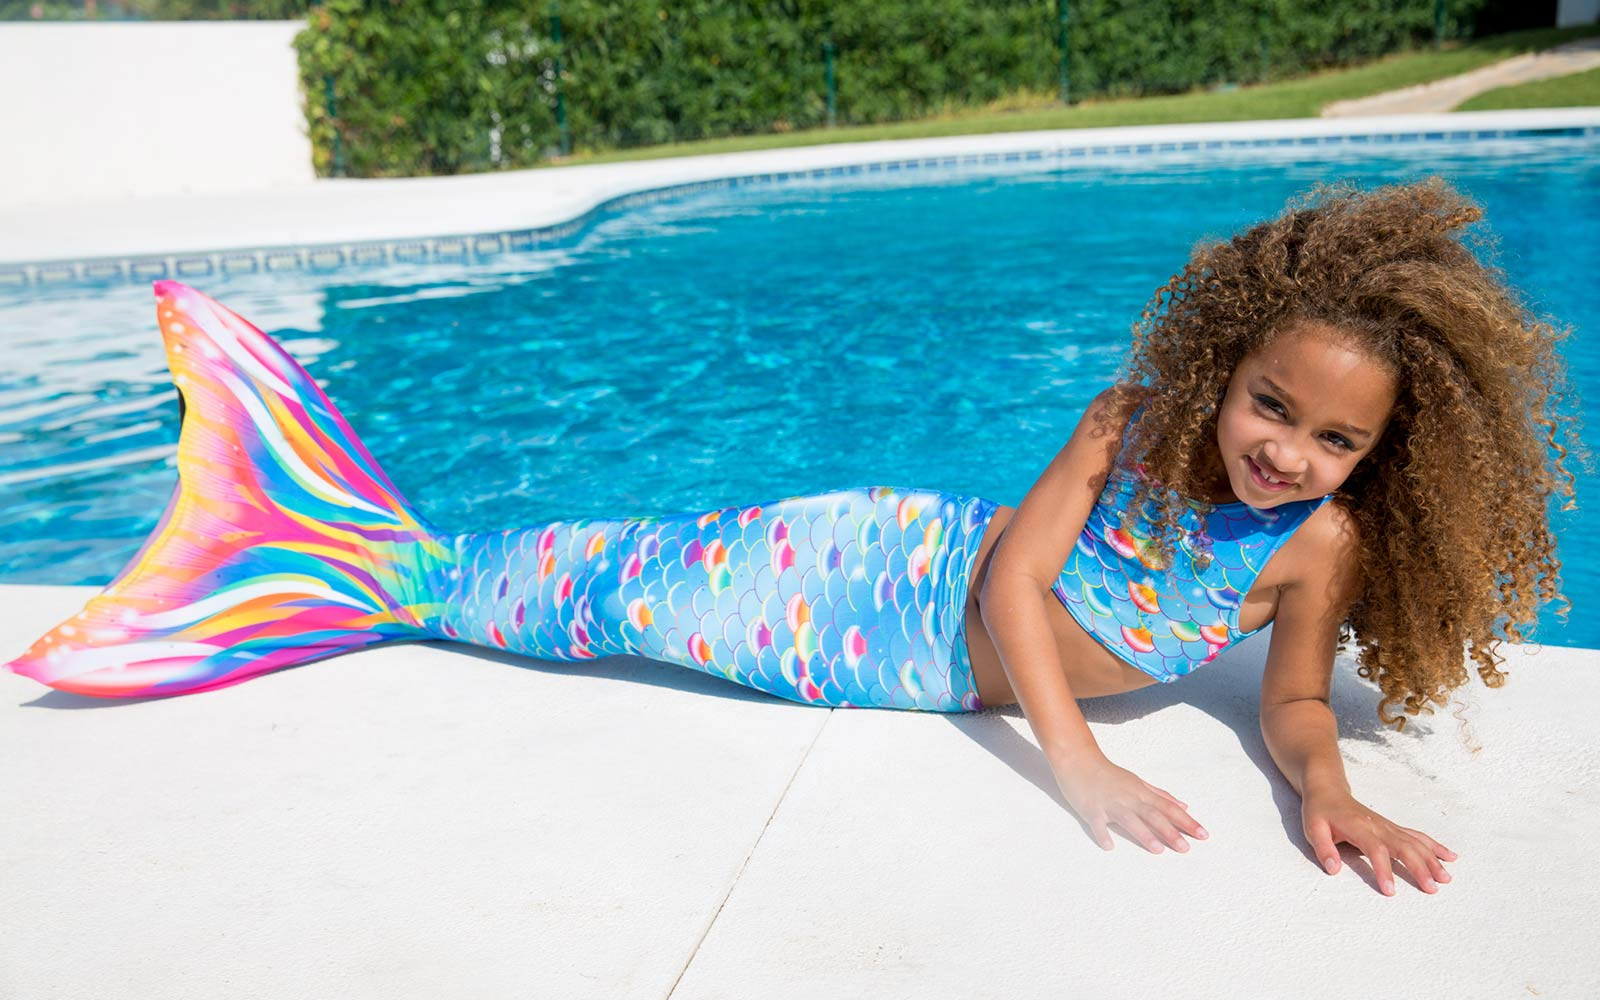 Rainbow Mermaid Tail and Monofin from Planet Mermaid UK - Real Mermaid Swimming for Girls